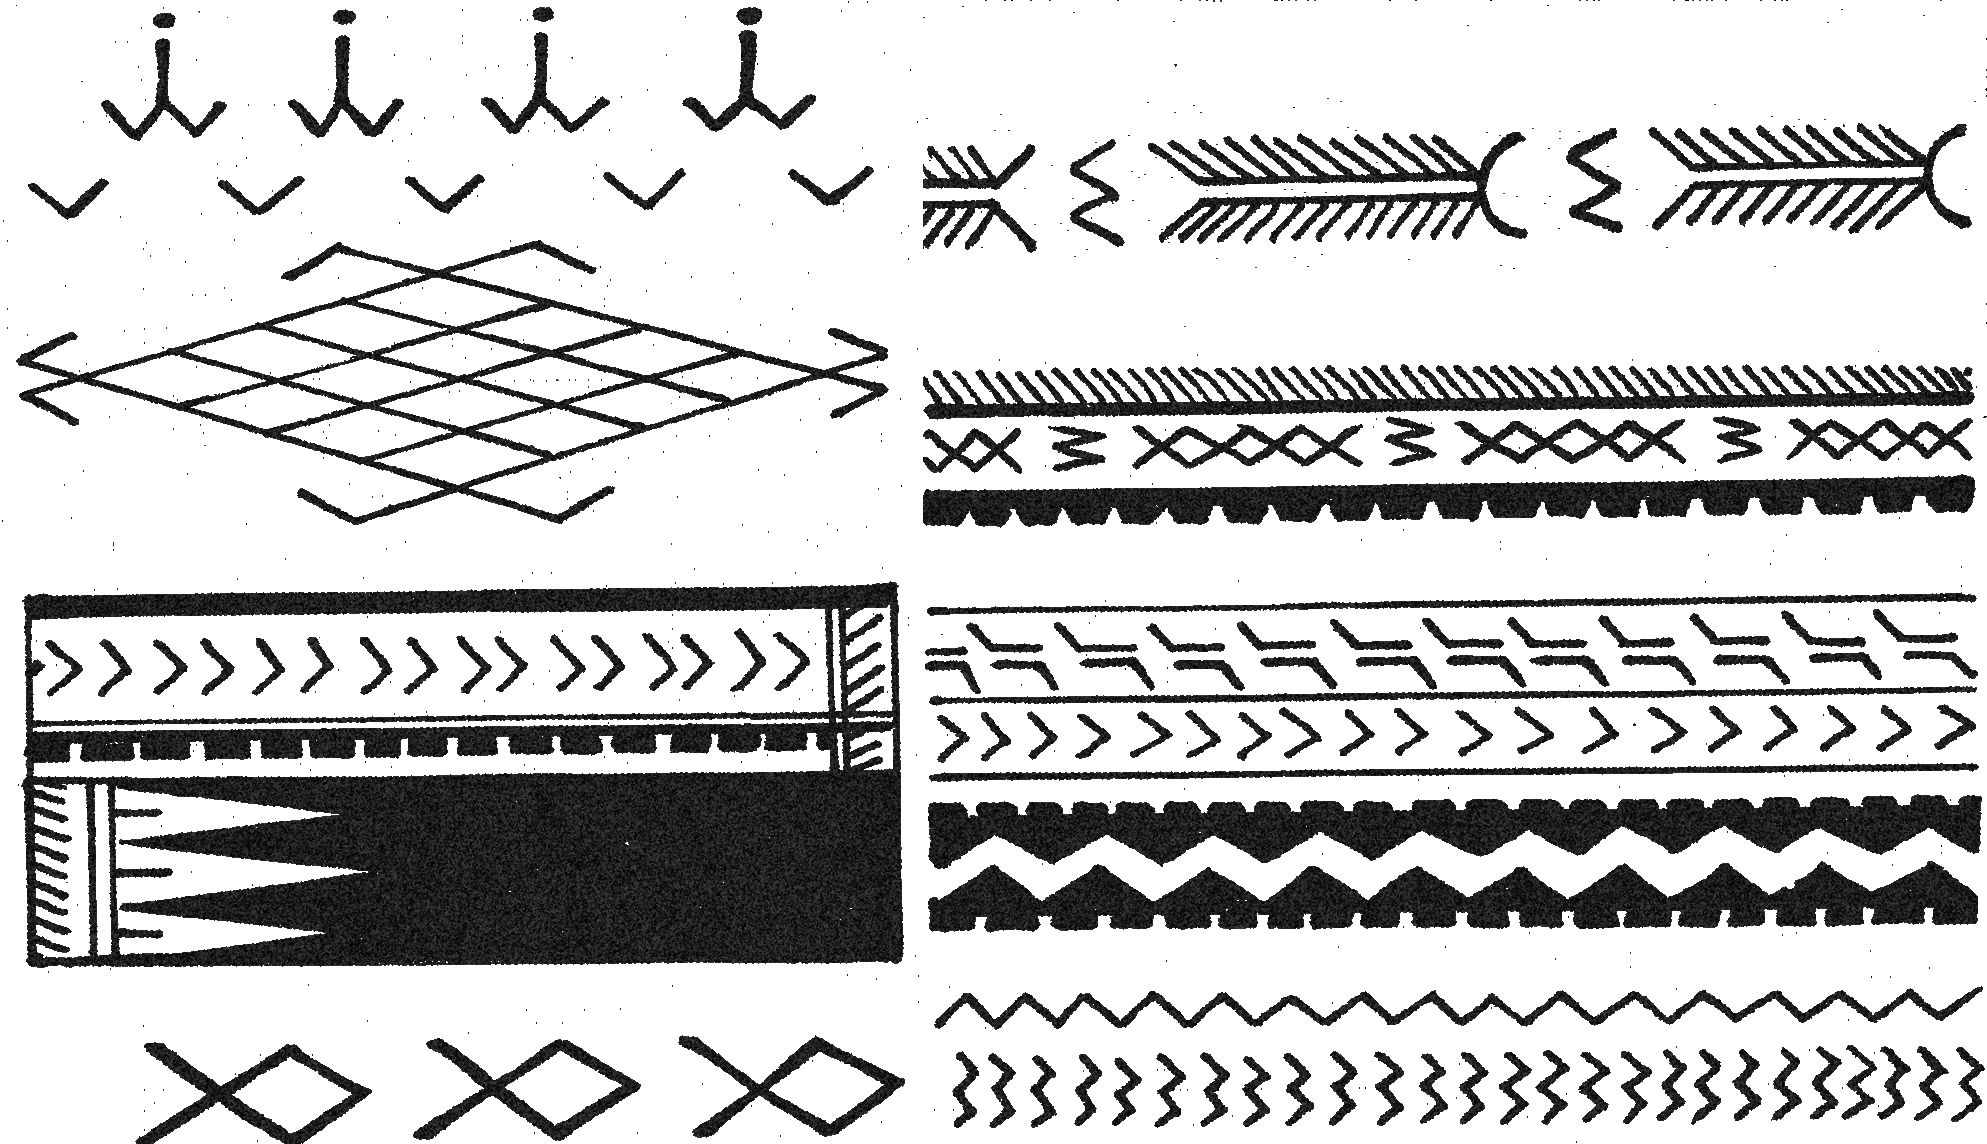 Samoan tatau symbols and meaning premier precedent 1 2 tattoo samoan tatau symbols and meaning premier precedent 1 2 biocorpaavc Image collections